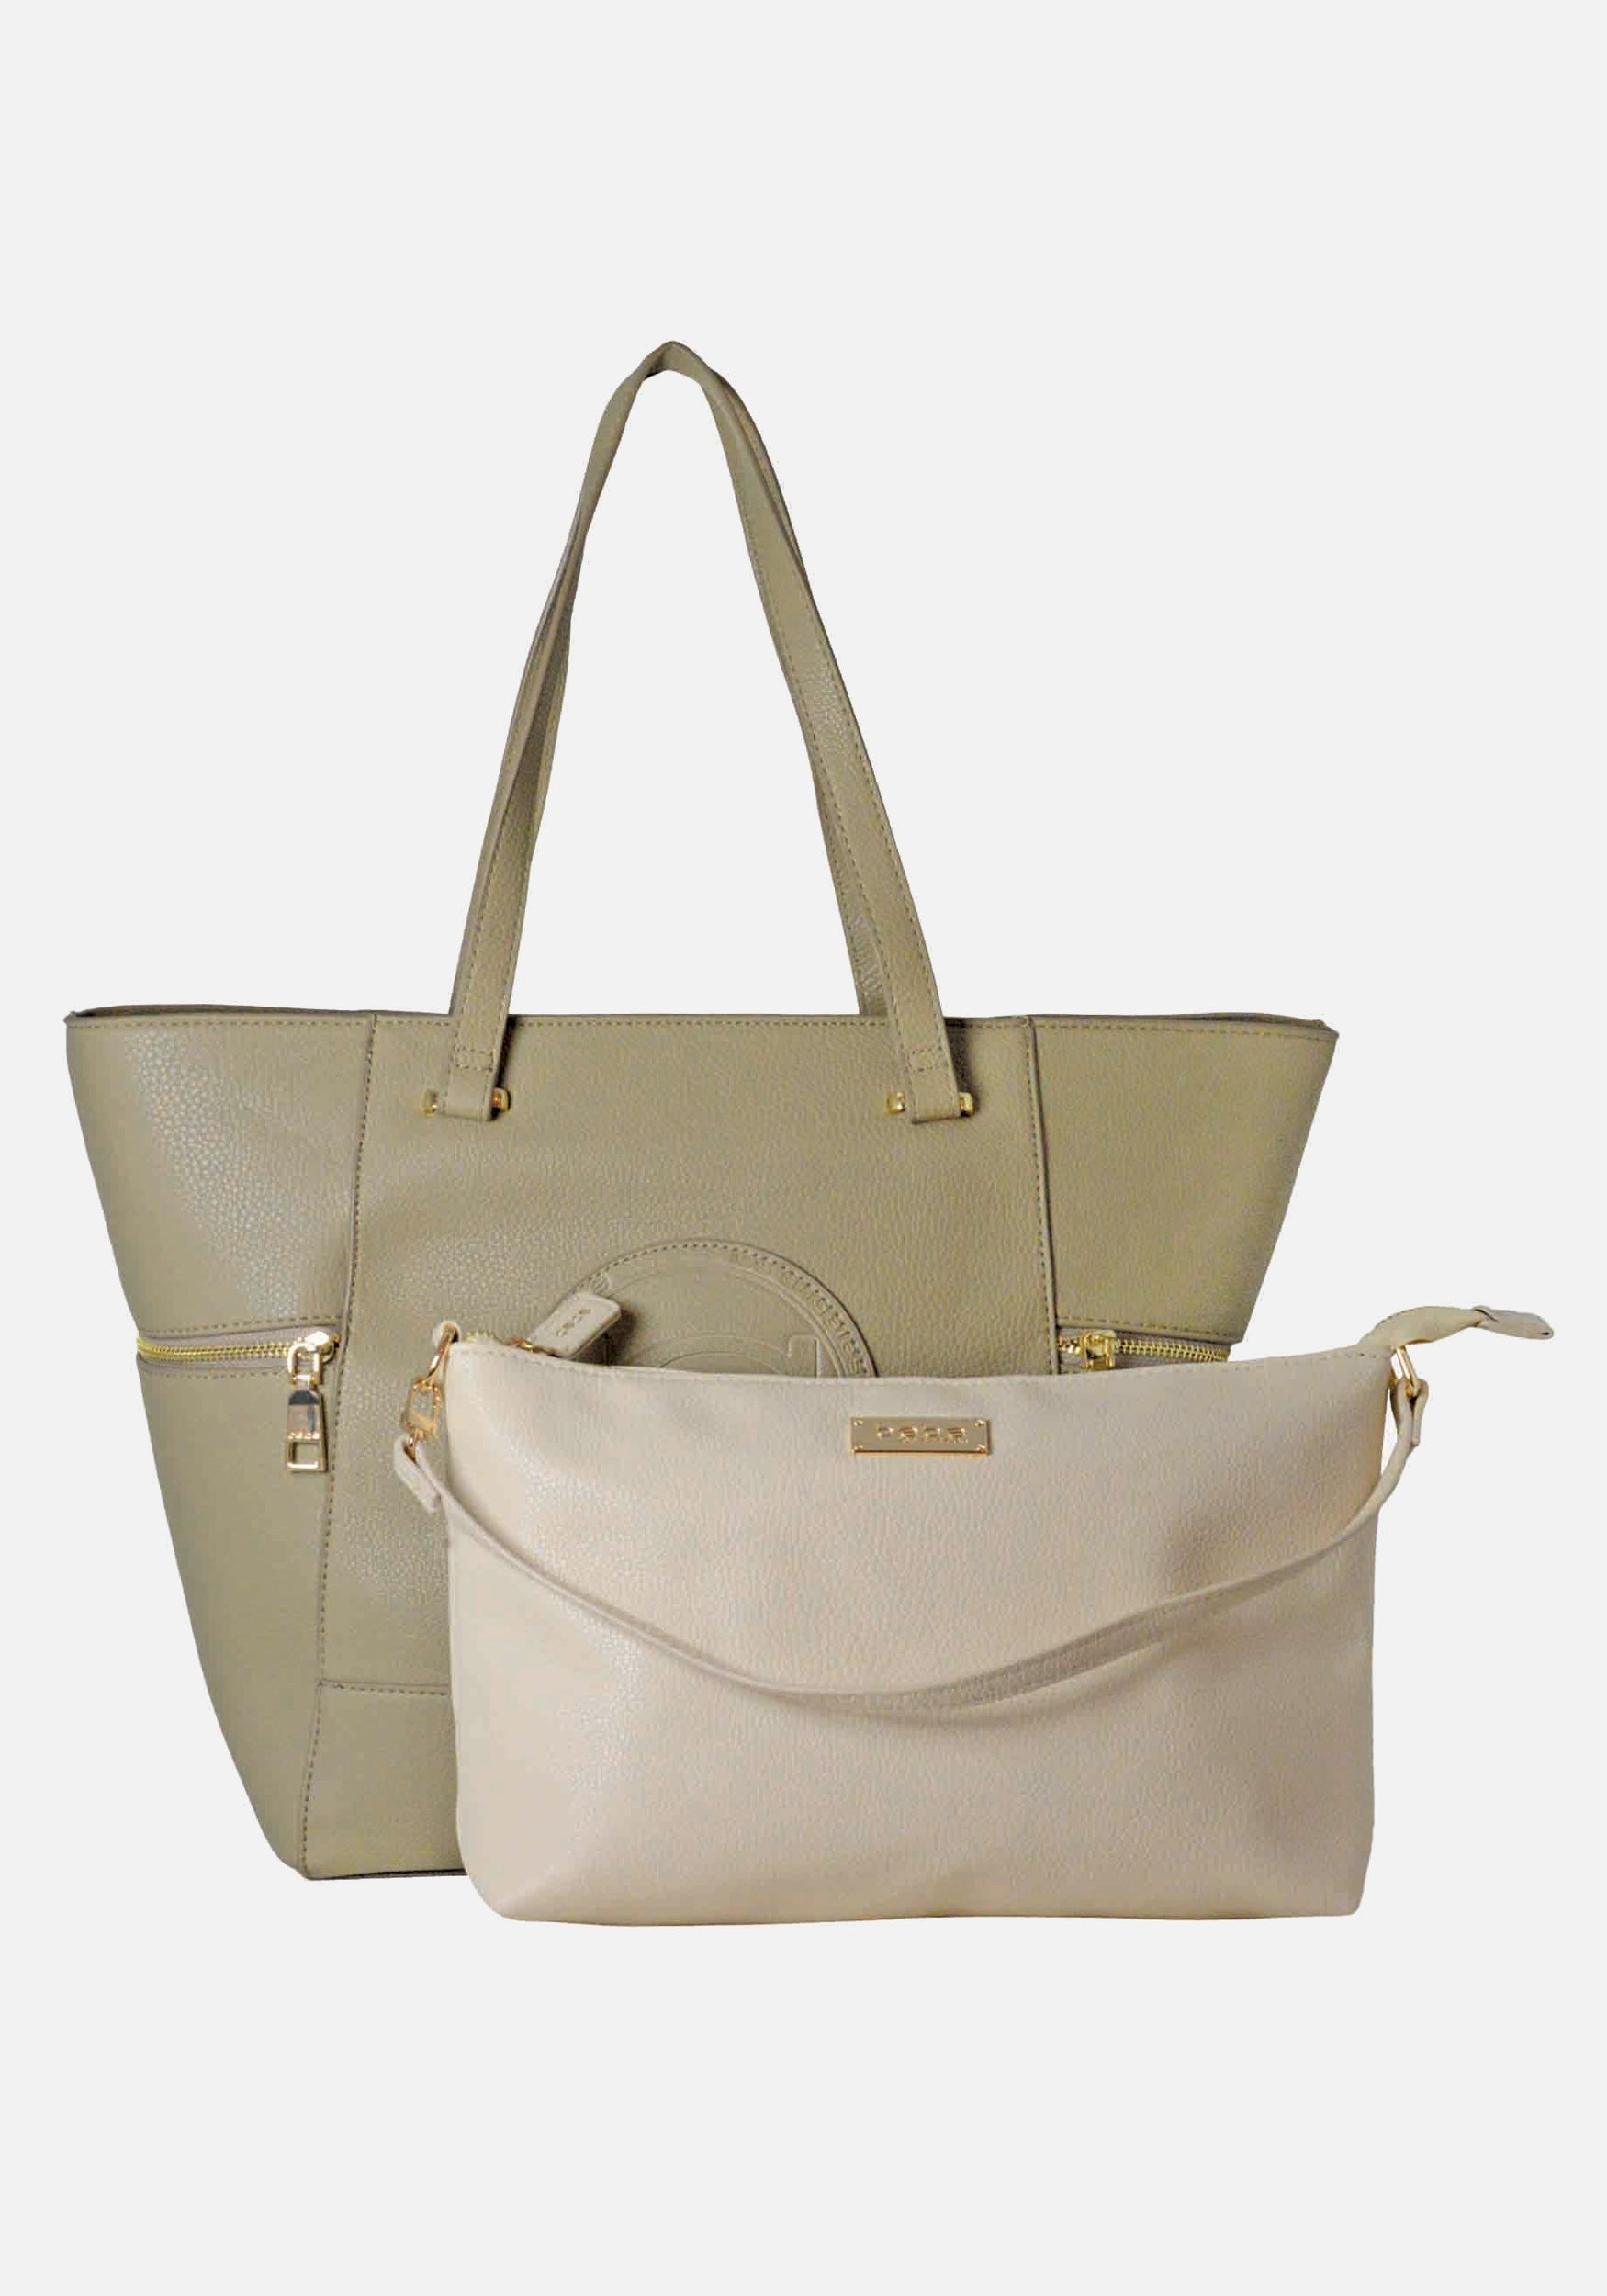 Bebe coupon: Bebe Women's Rumi Tote Bag in Taupe/Sand Polyester